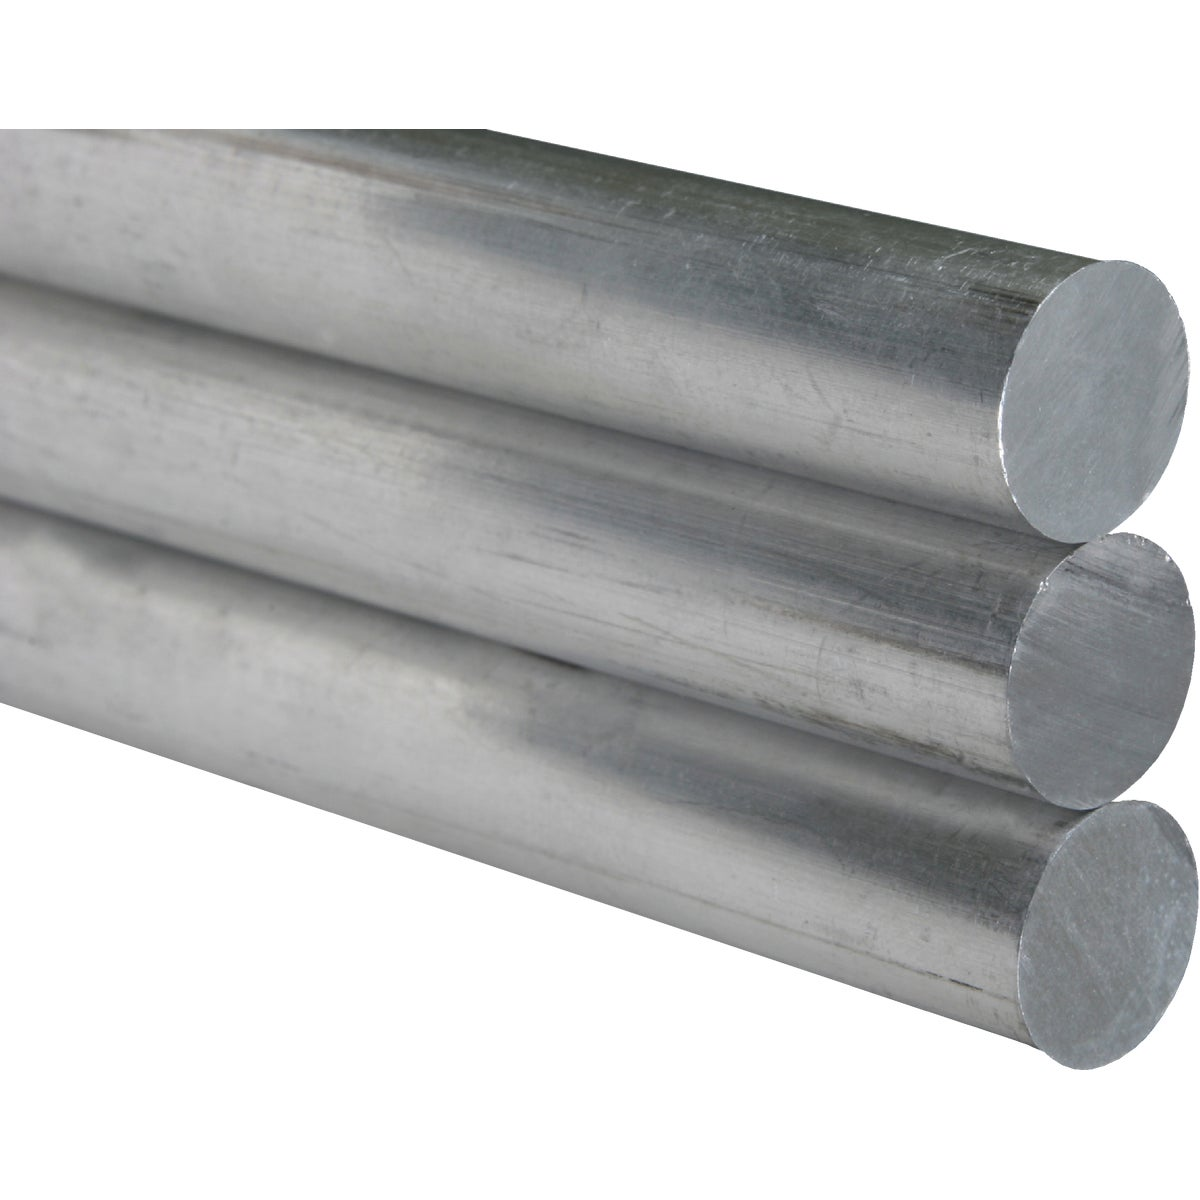 3/8X12 SOLID SS ROD